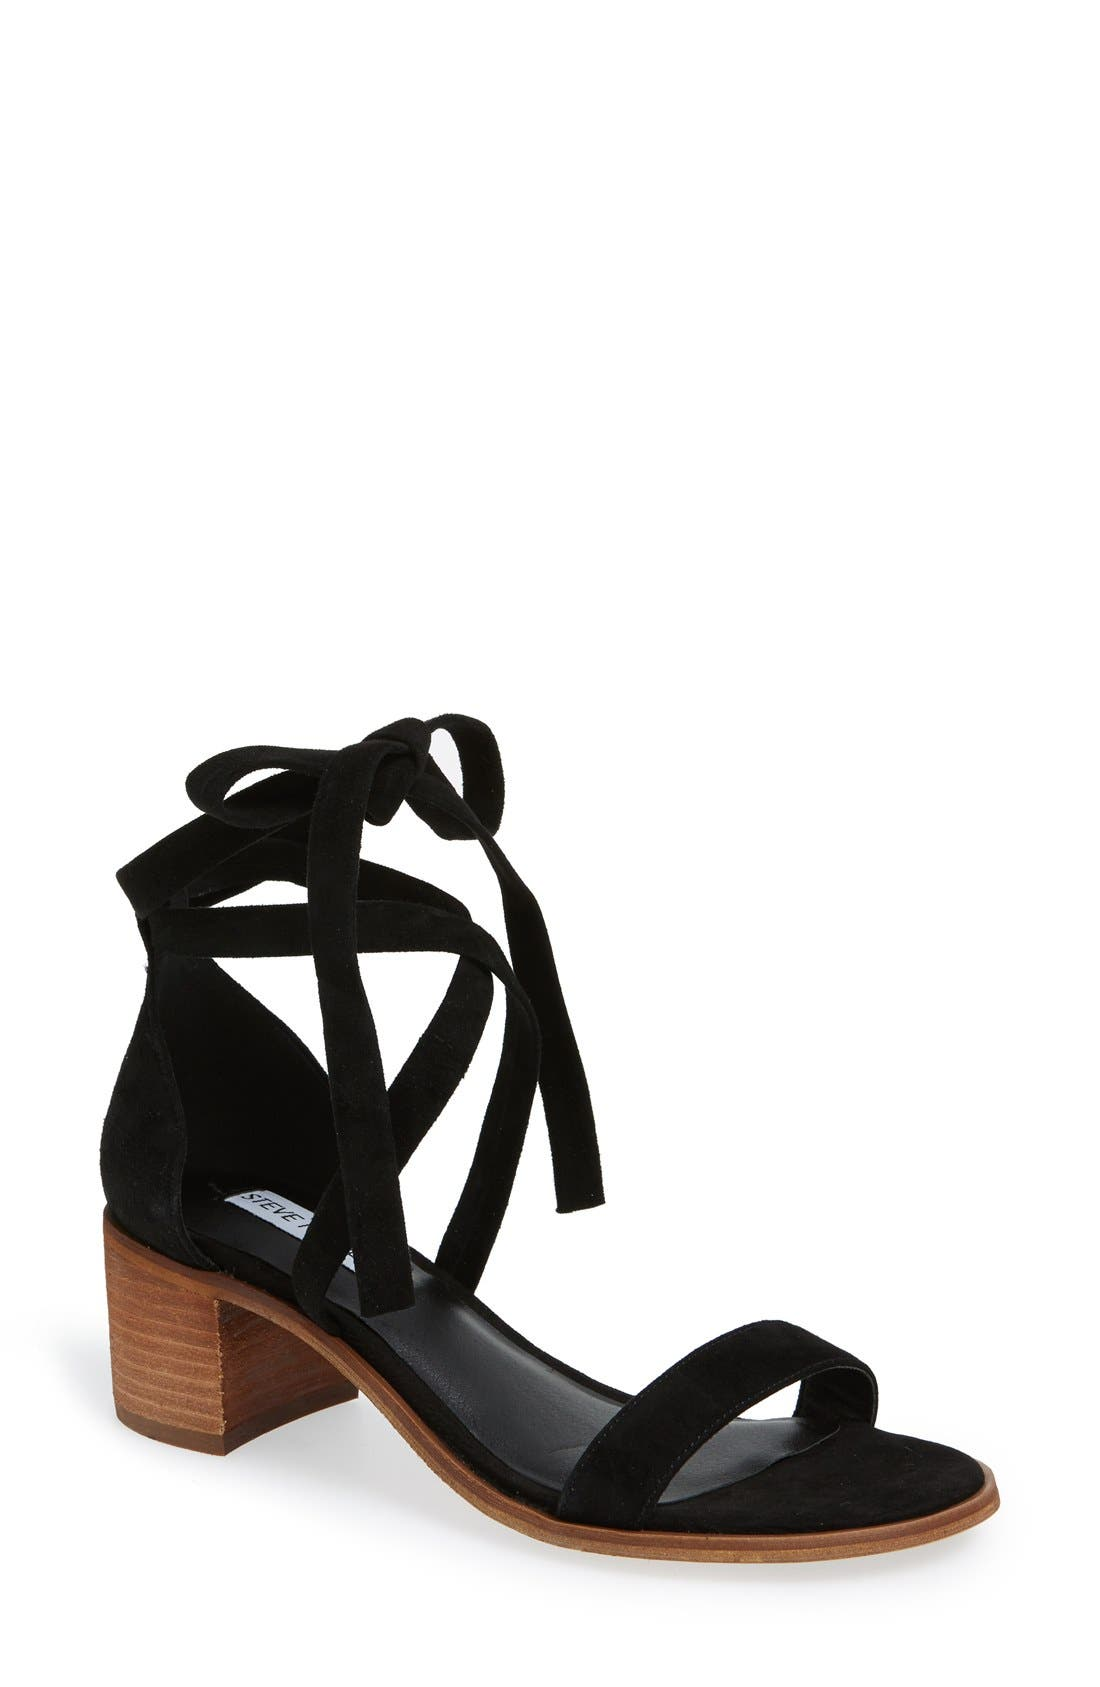 'Rizzaa' Ankle Strap Sandal,                             Main thumbnail 1, color,                             Black Suede